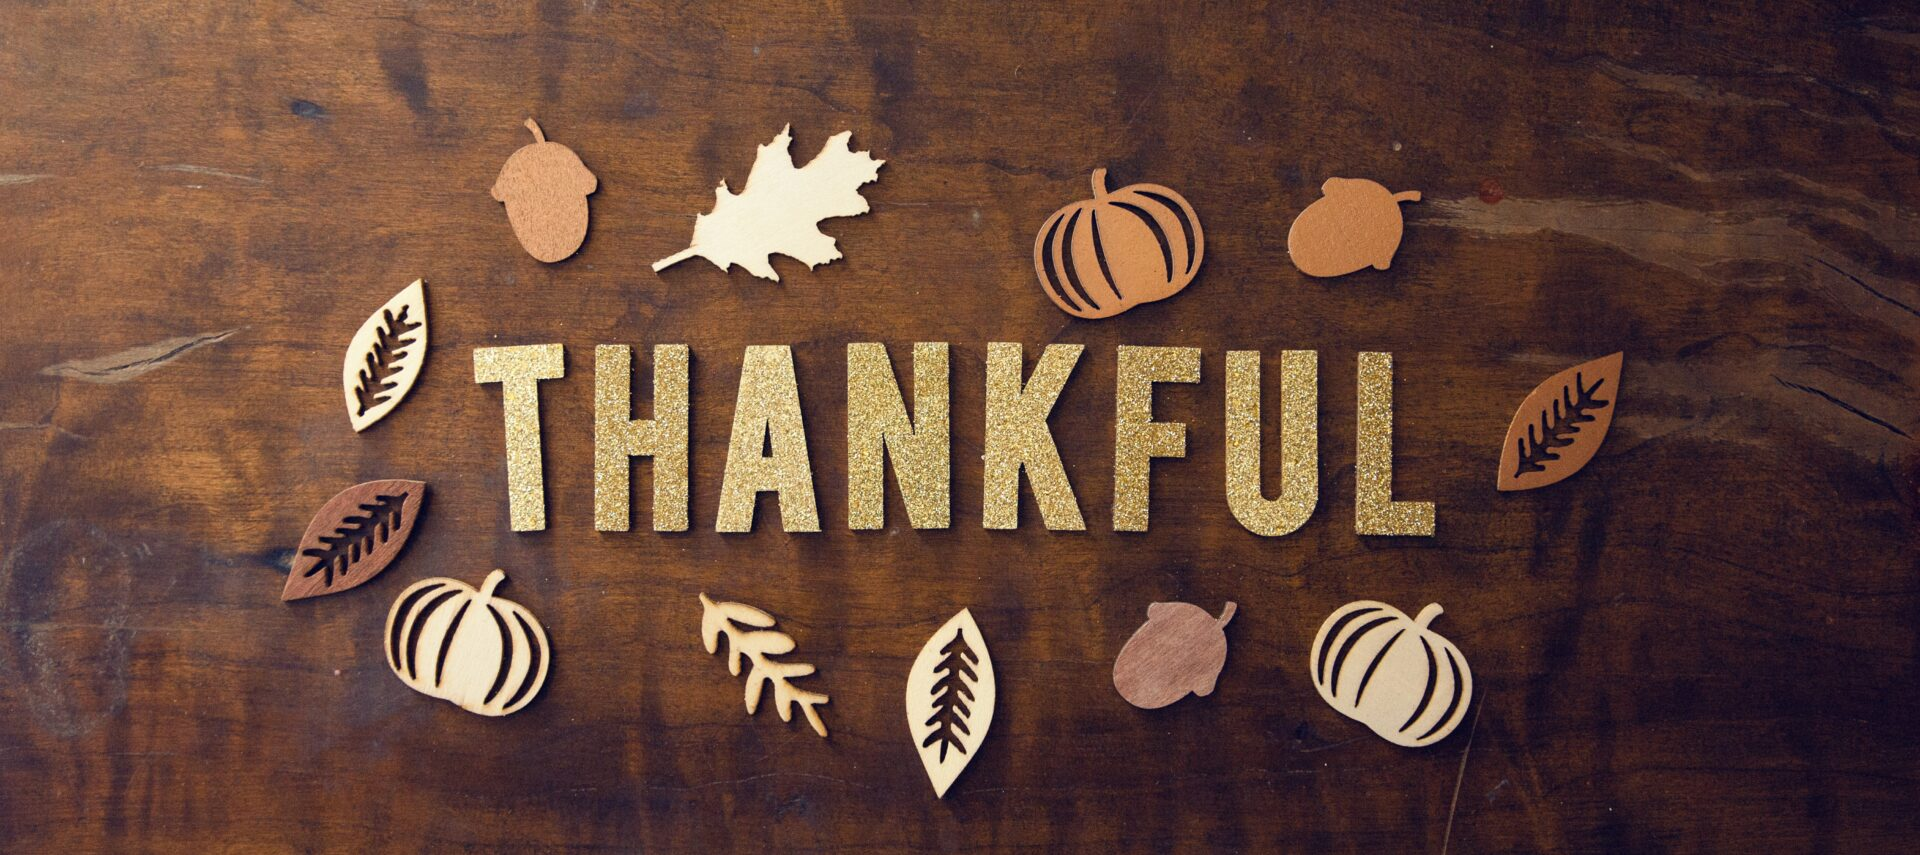 Wooden table with decorative gold leaves and the word thankful spelled out.